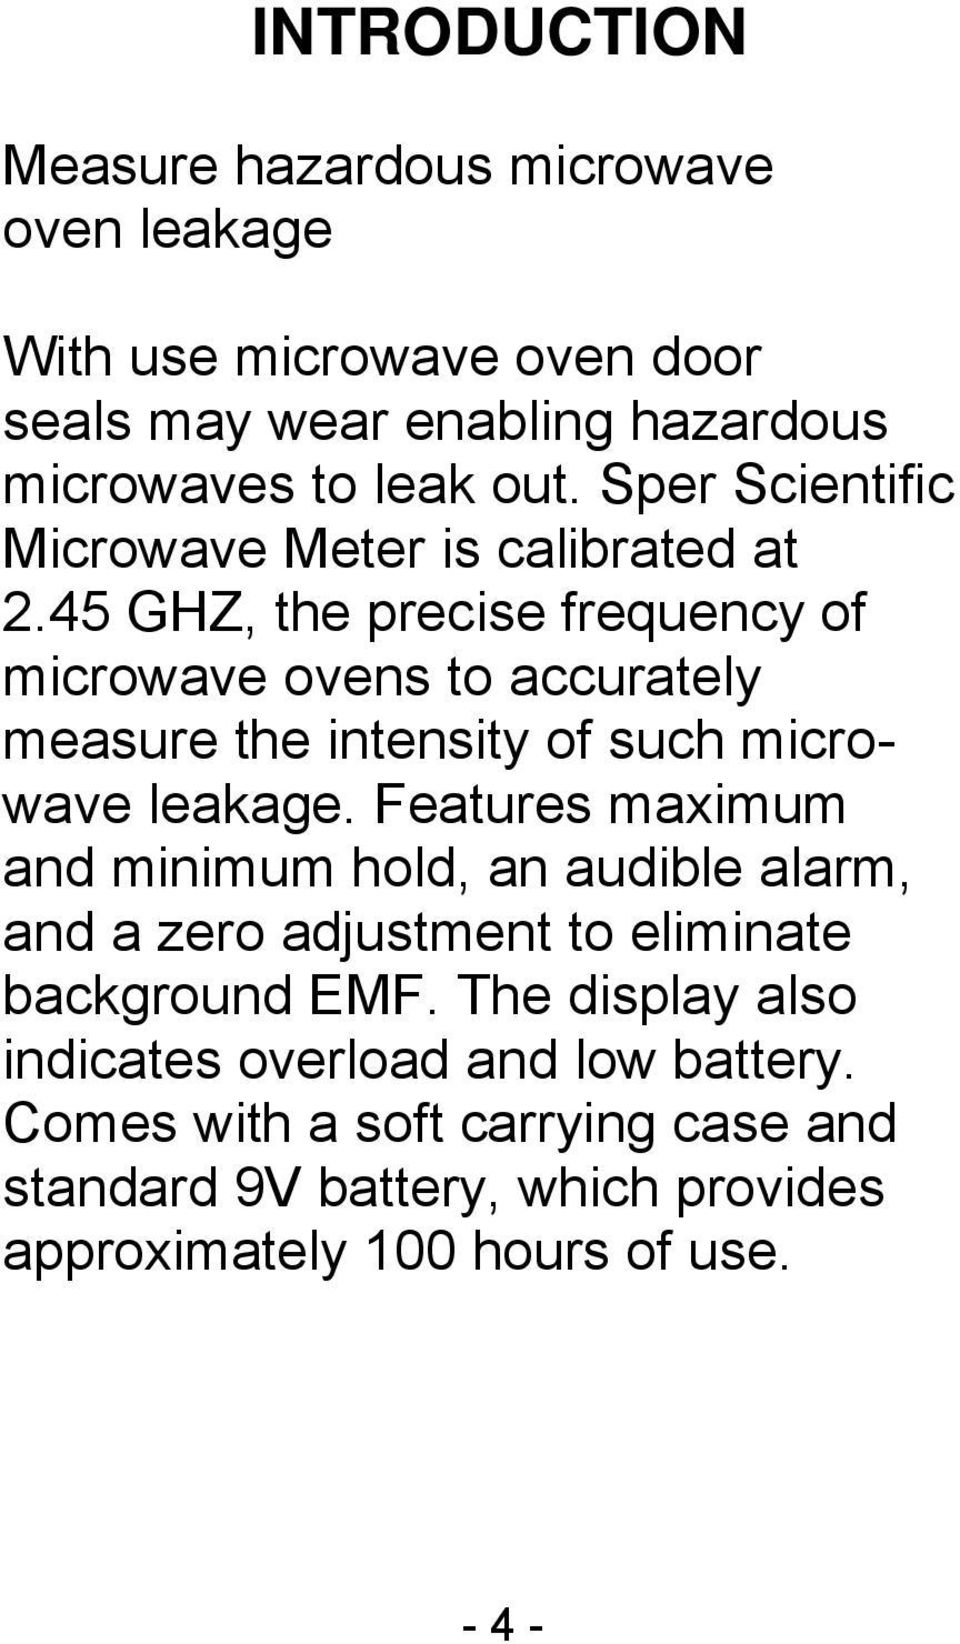 45 GHZ, the precise frequency of microwave ovens to accurately measure the intensity of such microwave leakage.